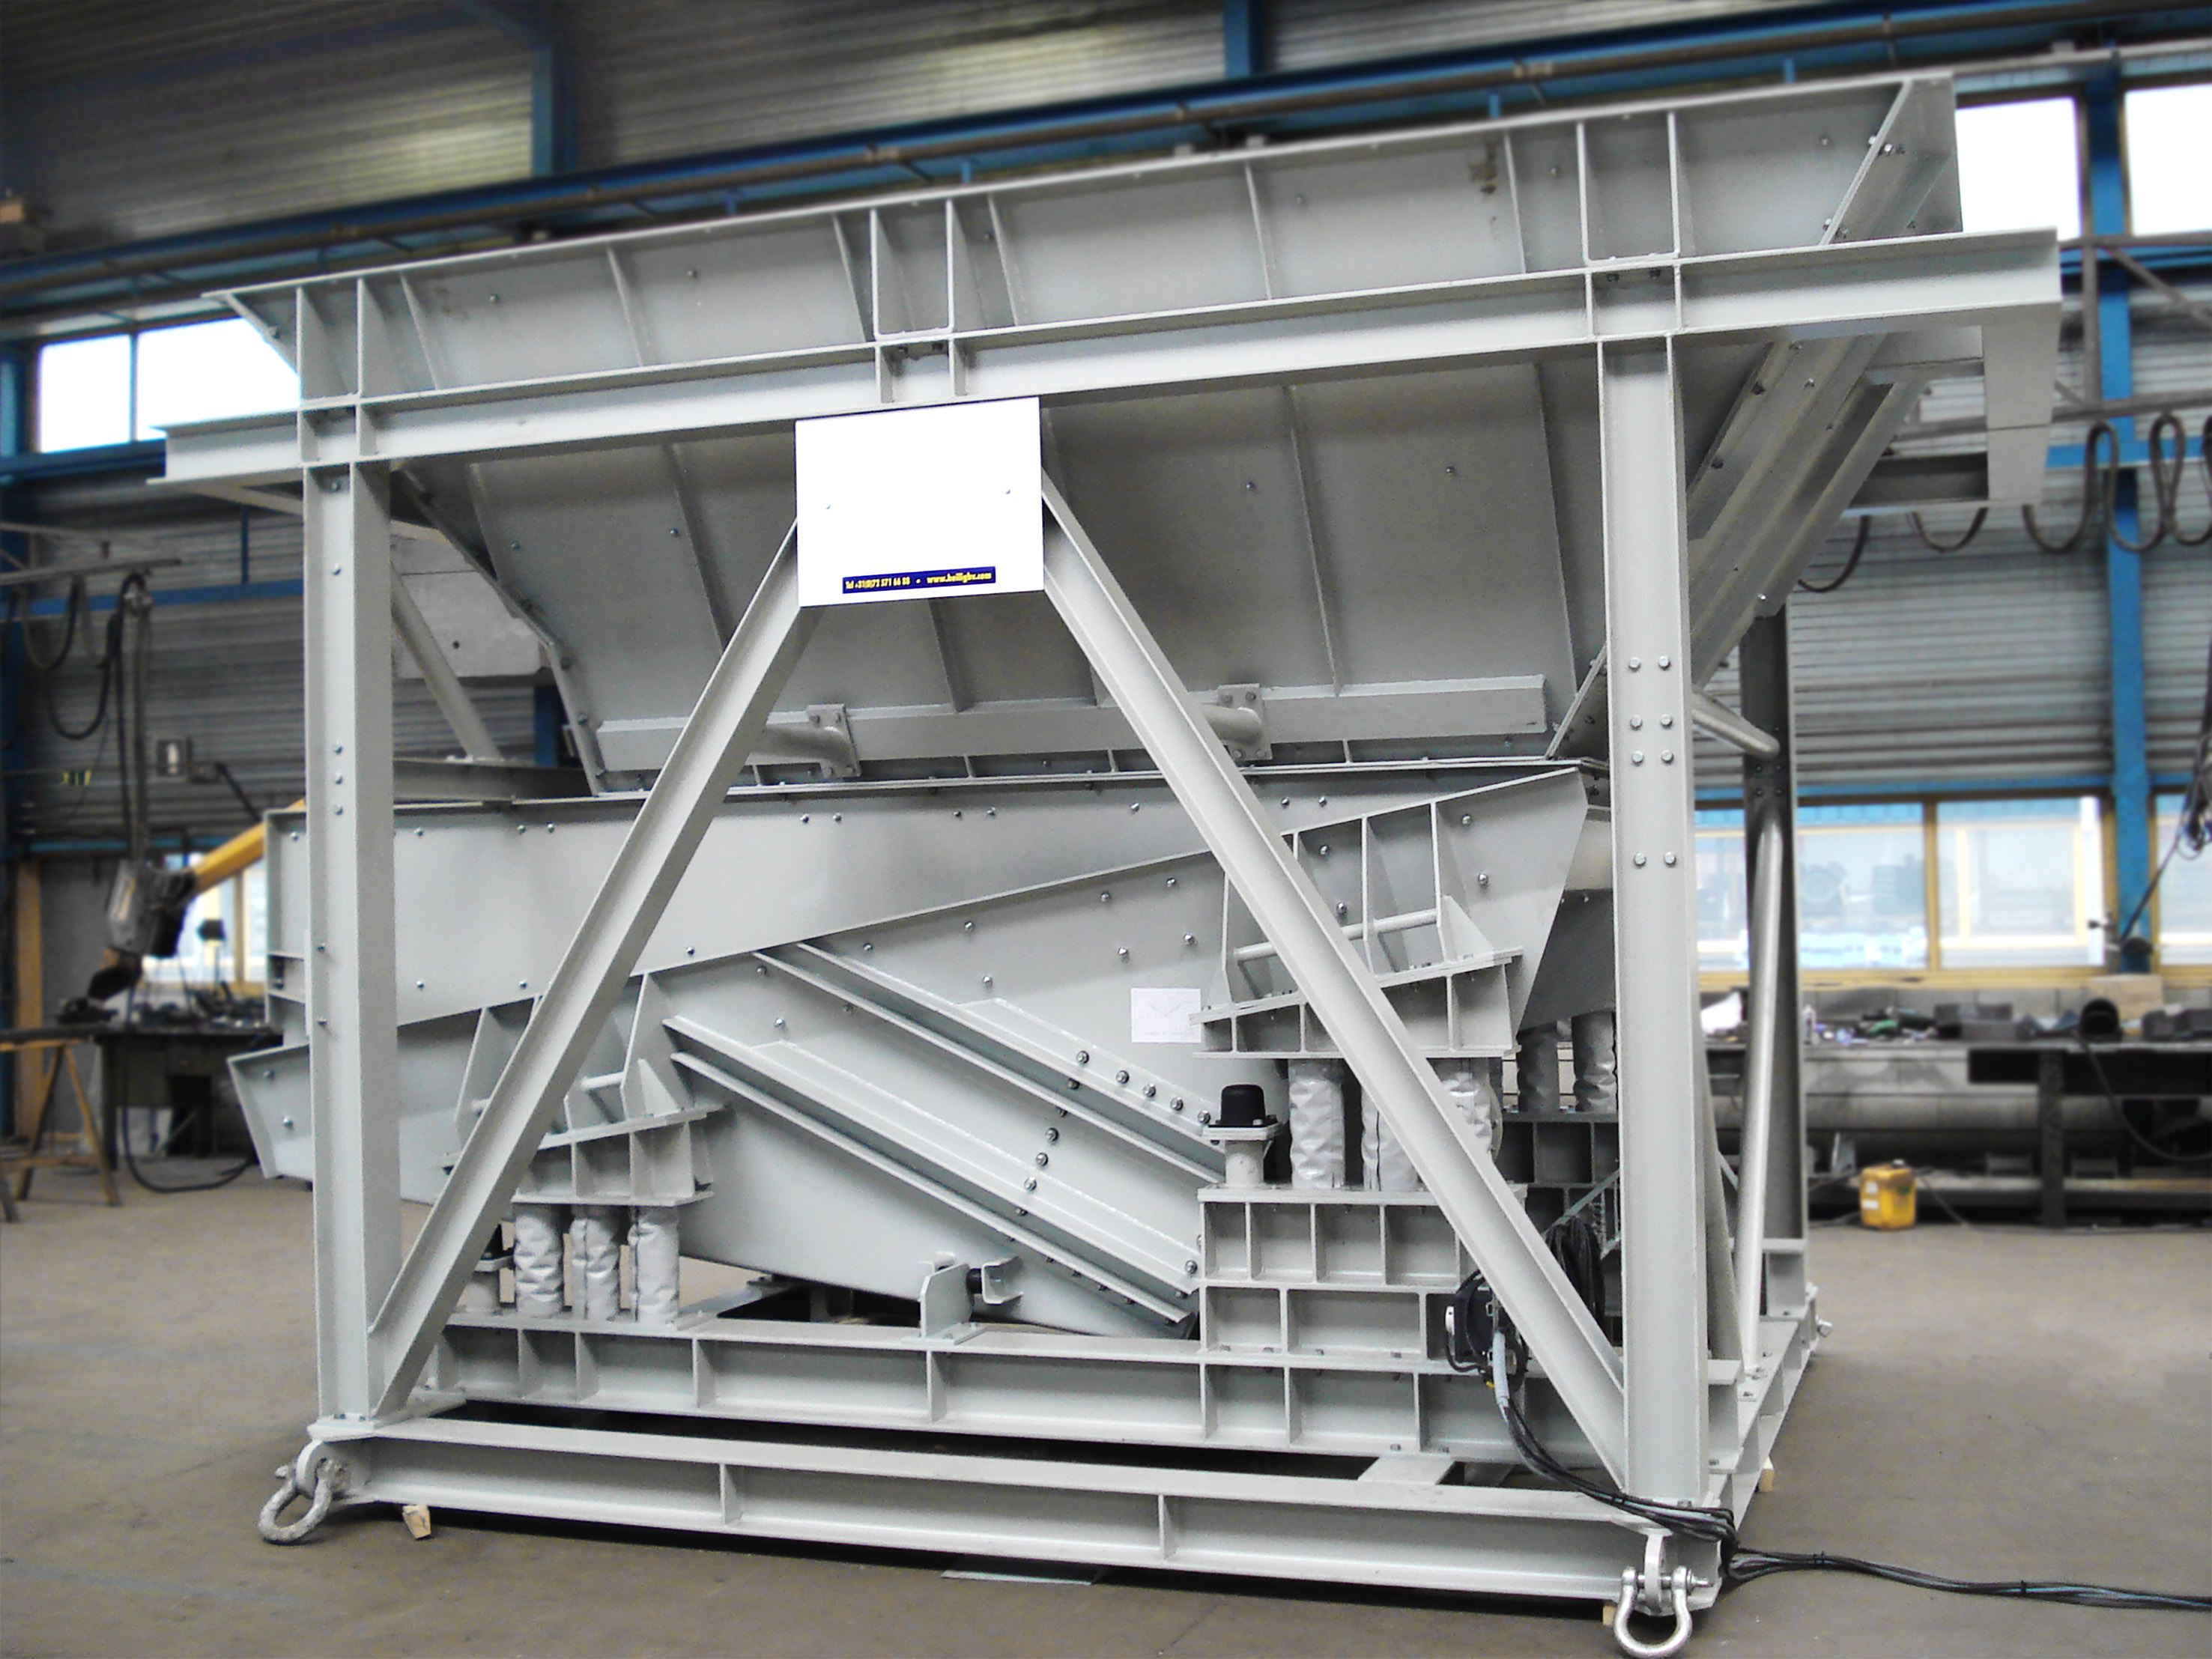 vibrating dosing feeder with bunker